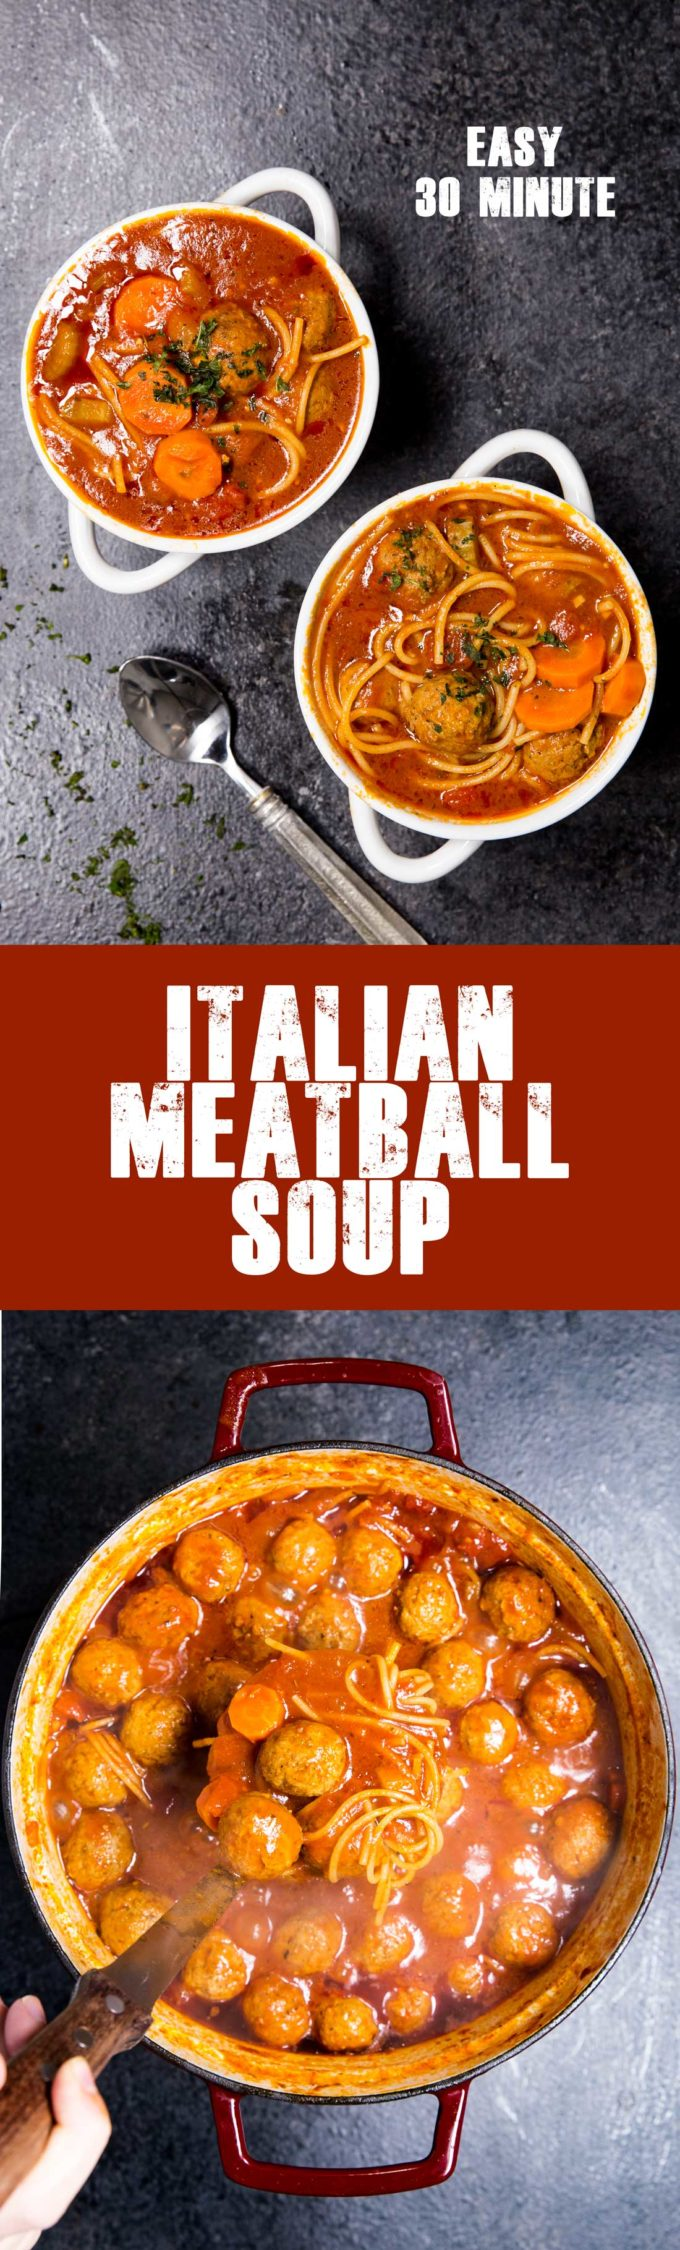 how to make meatball soup youtube